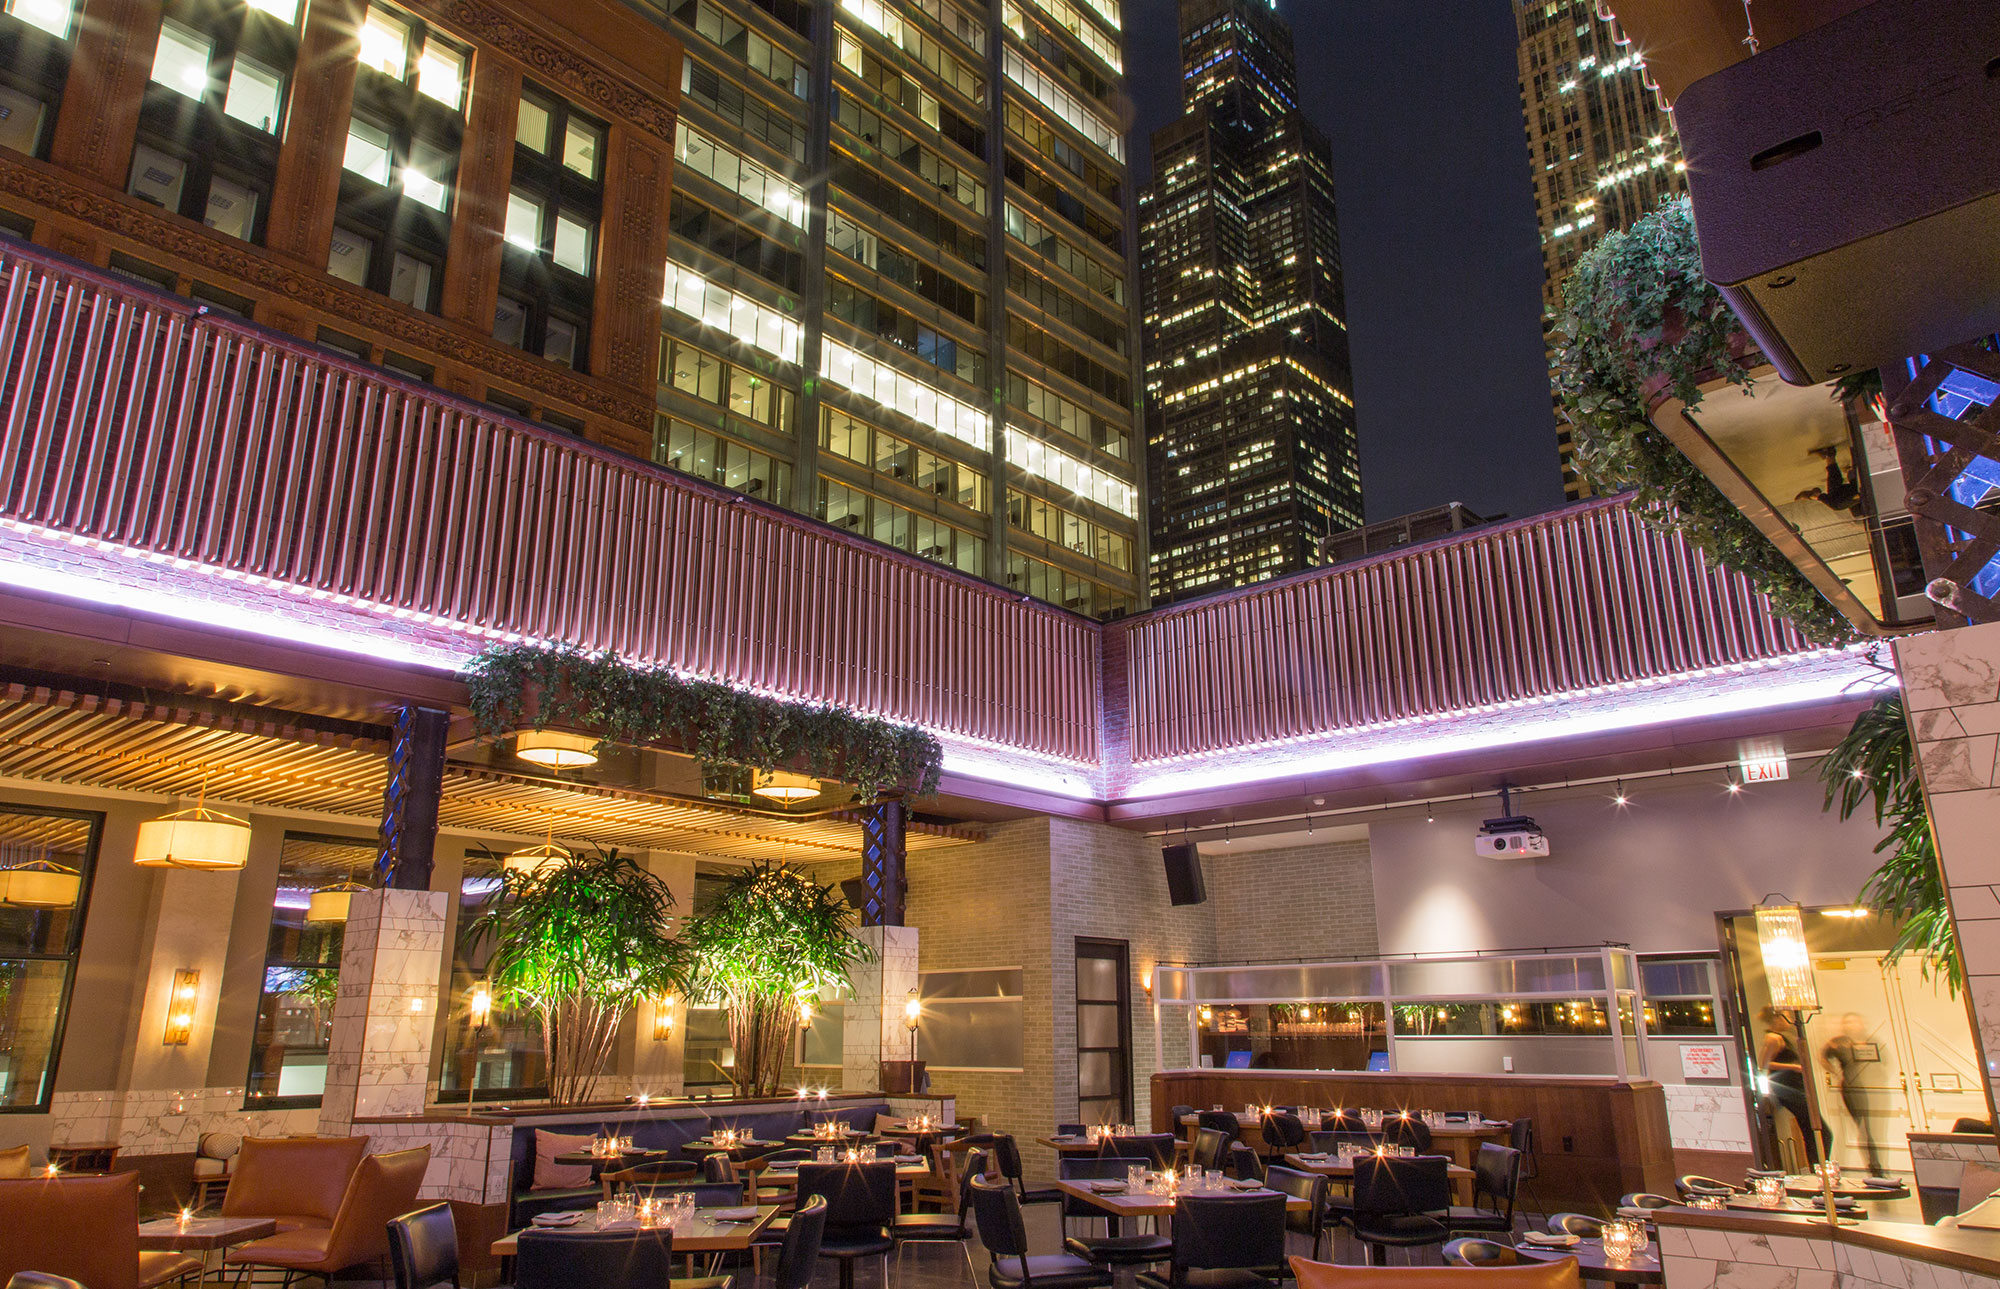 Boleo Rooftop bar with retractable roof open and 10 tables and chairs